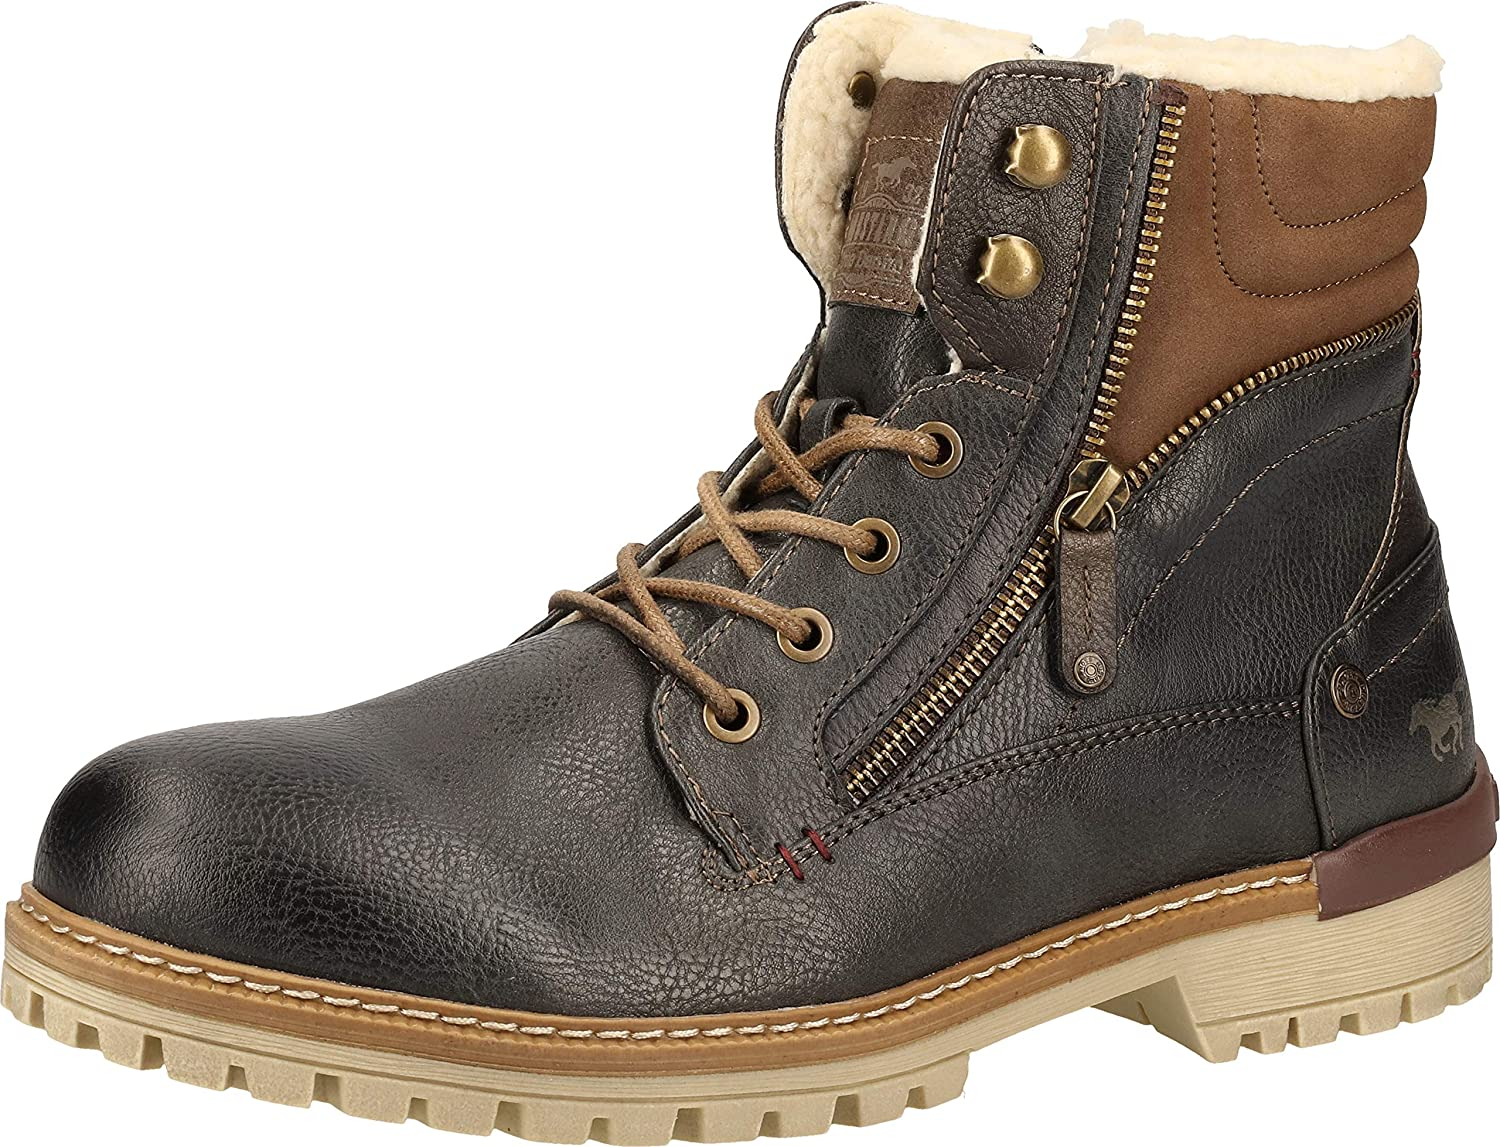 Mustang 4142-601-259, Bottes Classiques Homme Anthracite